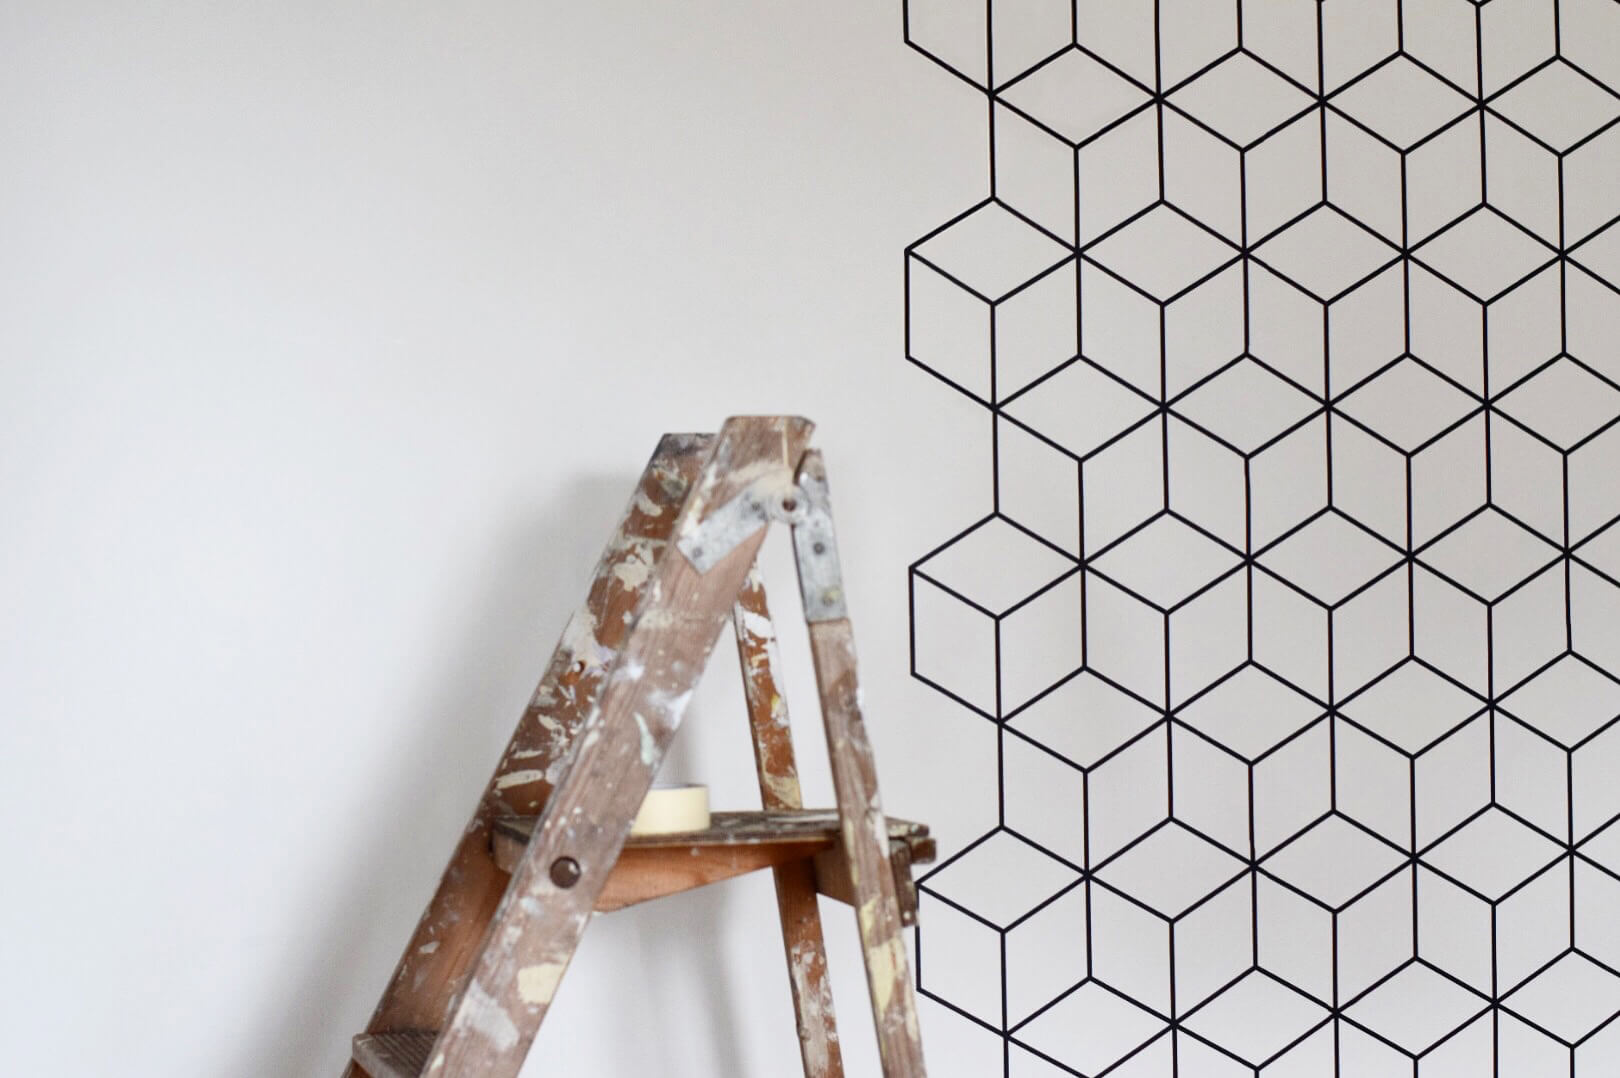 Buy temporary wallpaper with a geometric pattern grillo designs www grillo designs